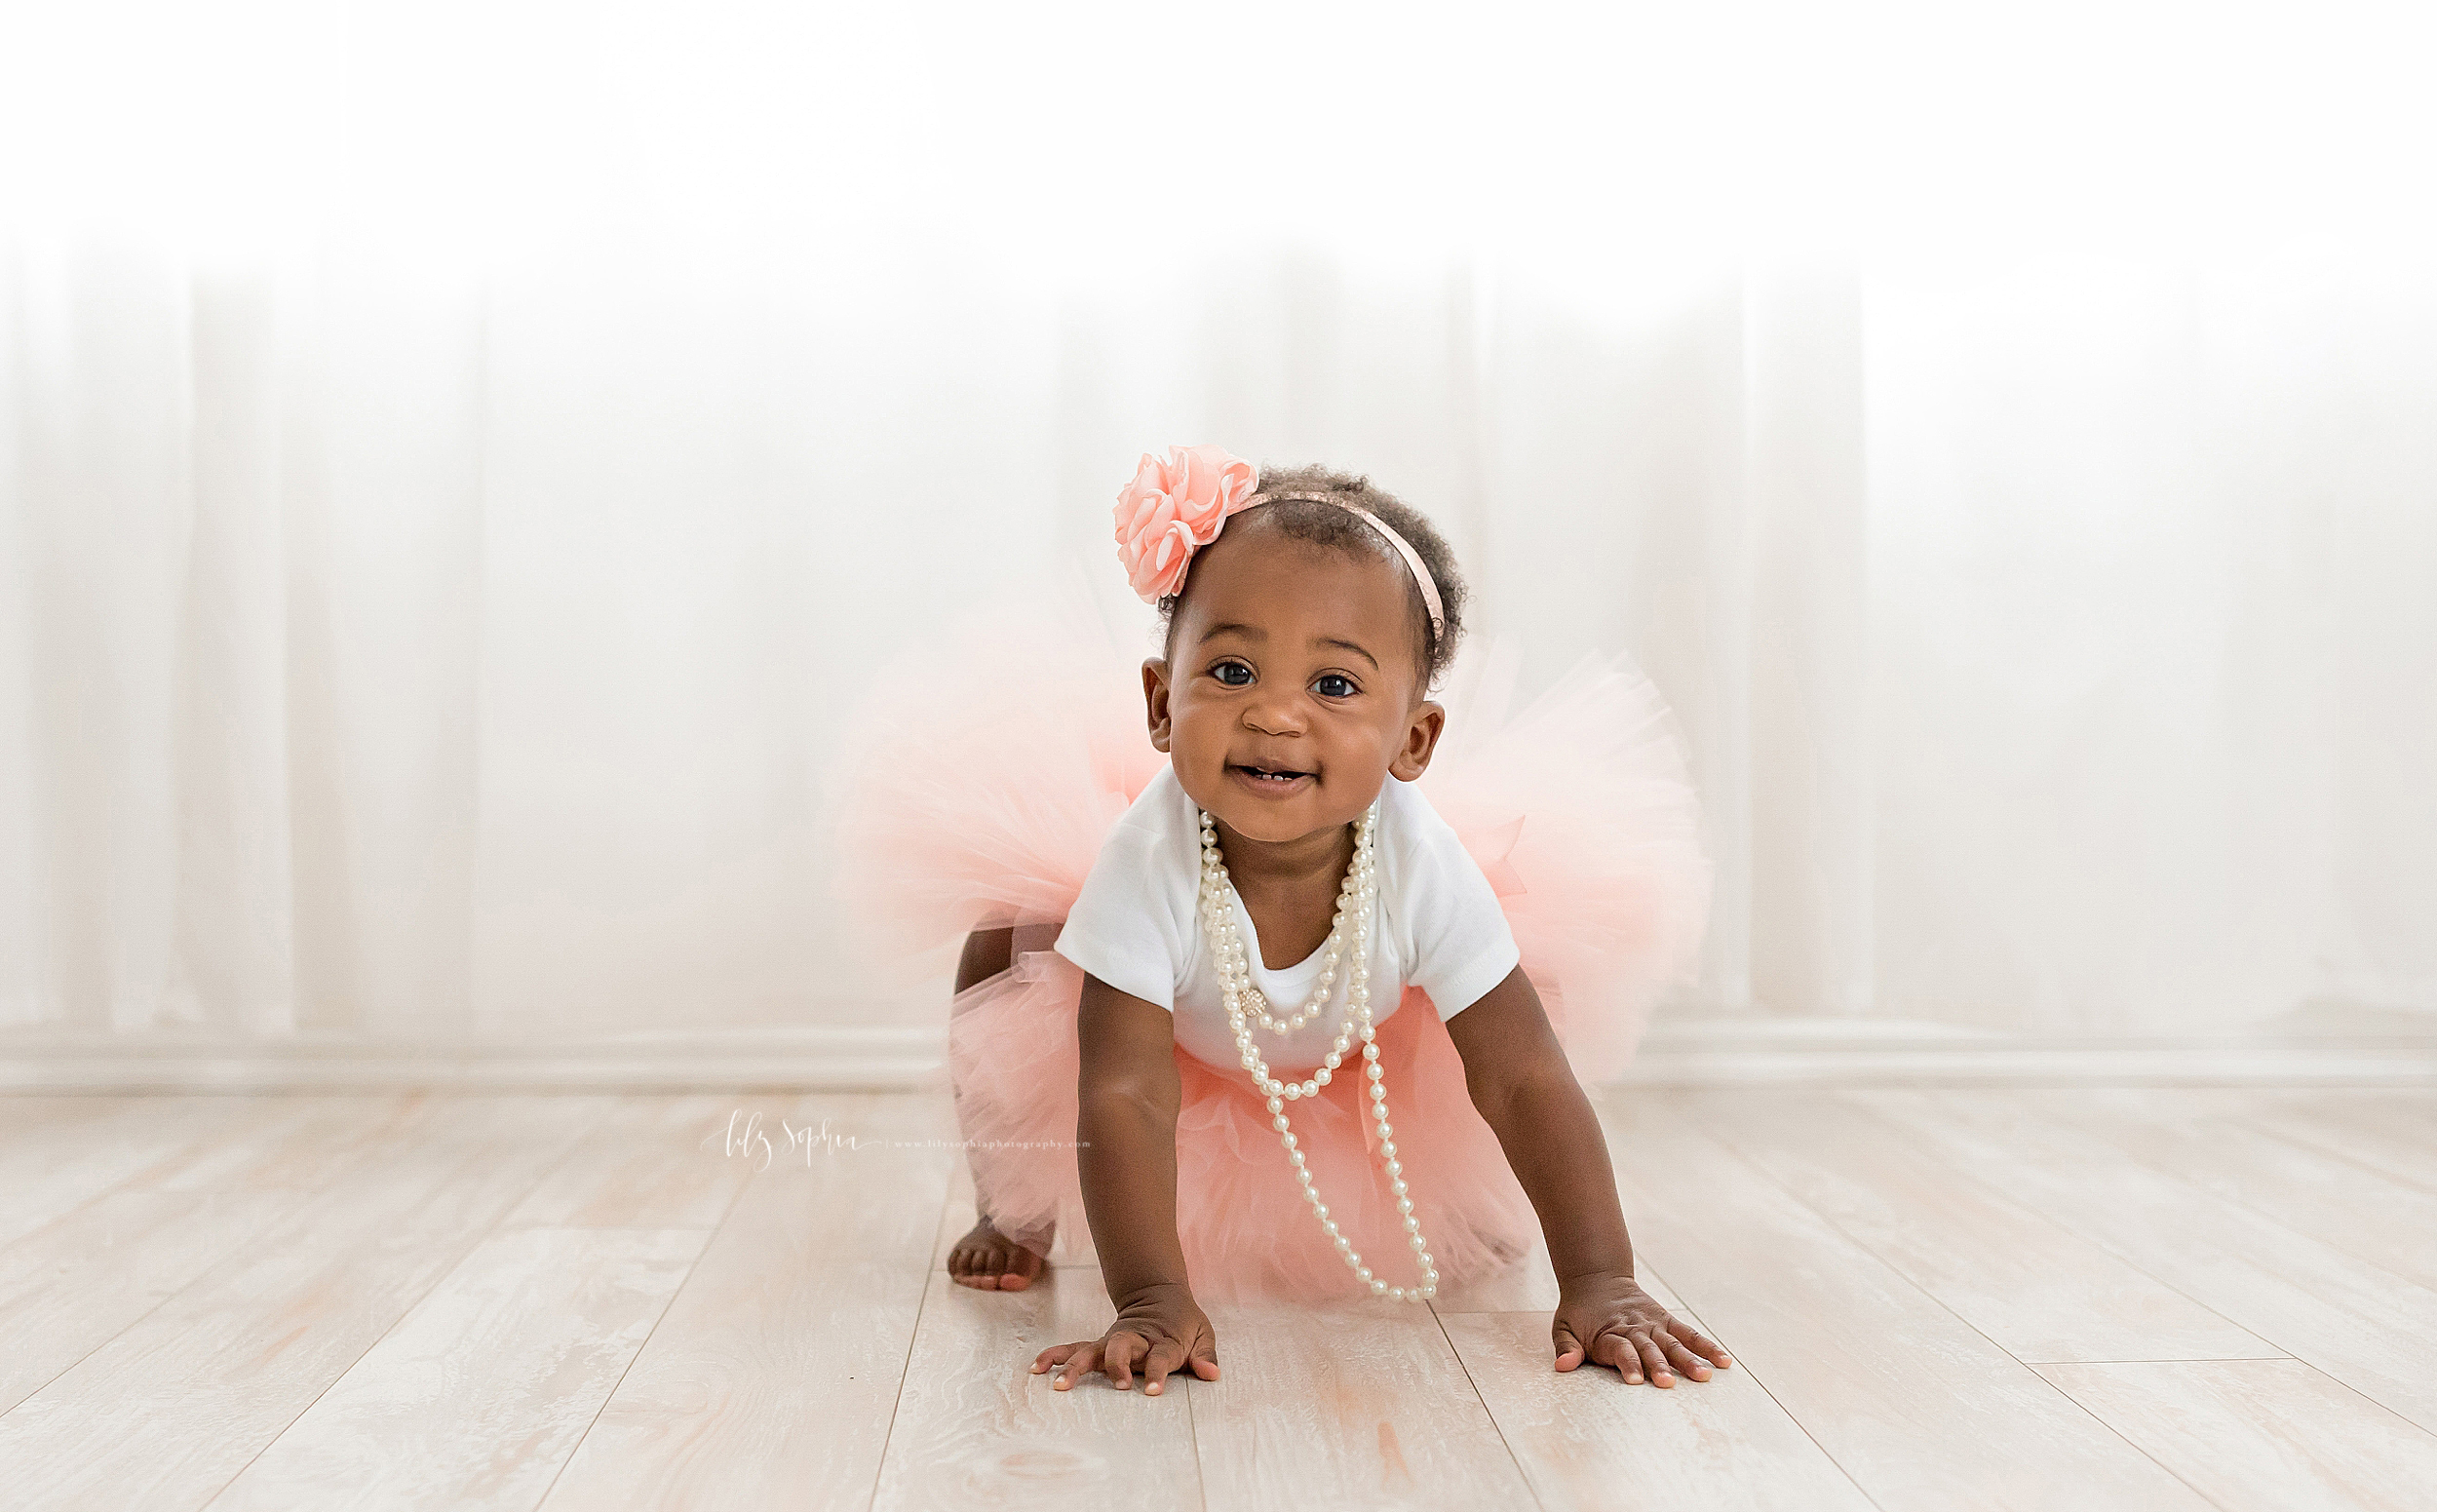 atlanta-smyrna-brookhaven-decatur-lily-sophia-photography-photographer-portraits-grant-park-intown-first-birthday-cake-smash-one-year-old-toddler-baby-girl_0015.jpg